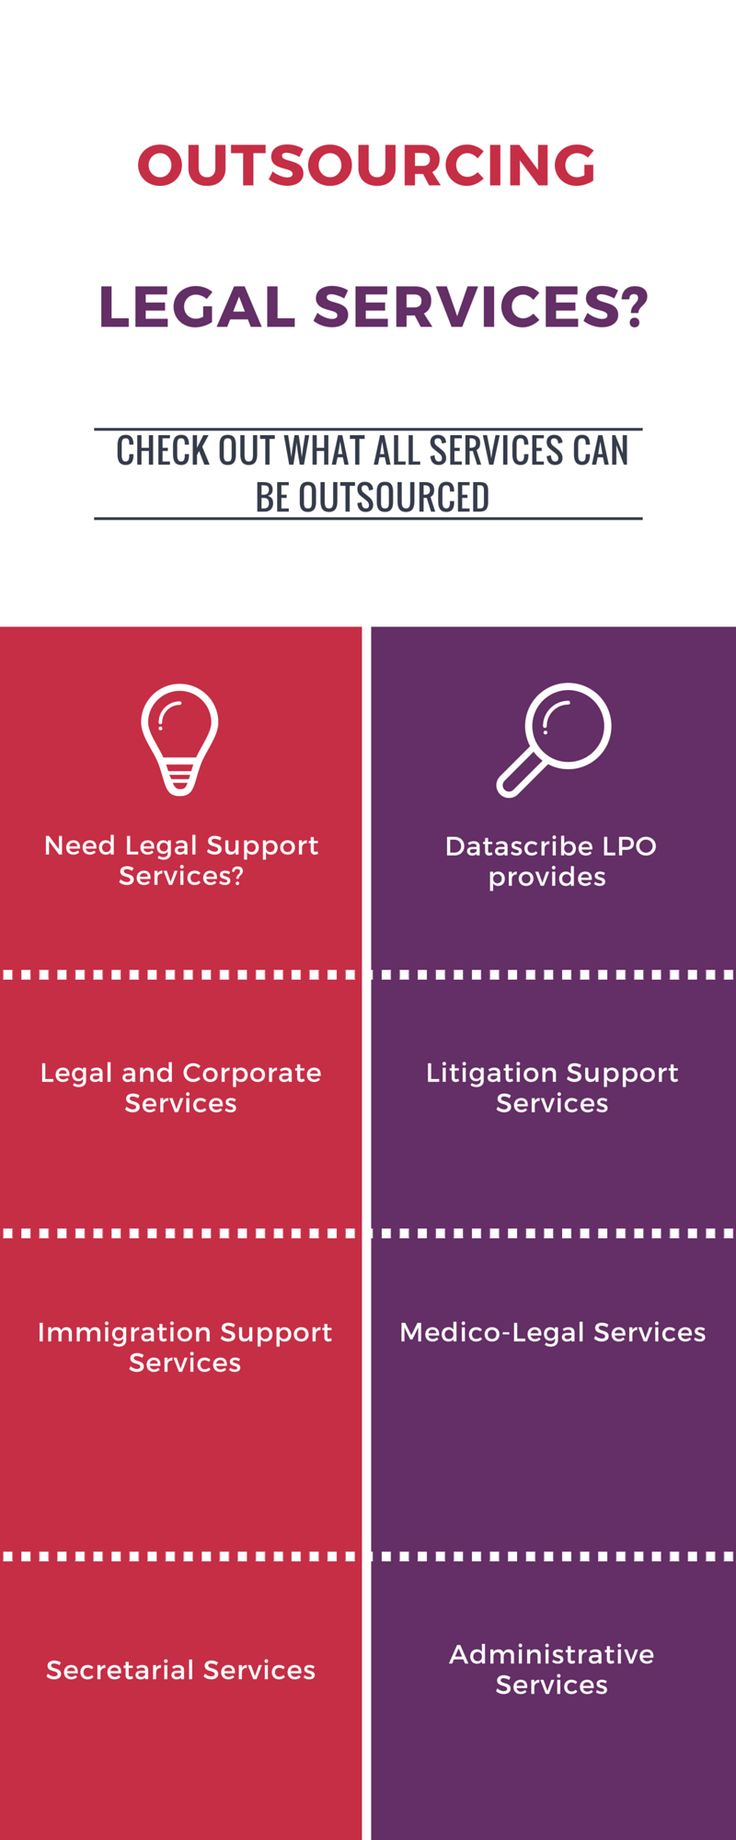 Datascribe – provide legal outsourcing services include legal support, immigration, medico legal, litigation support, offshore document processing and review.